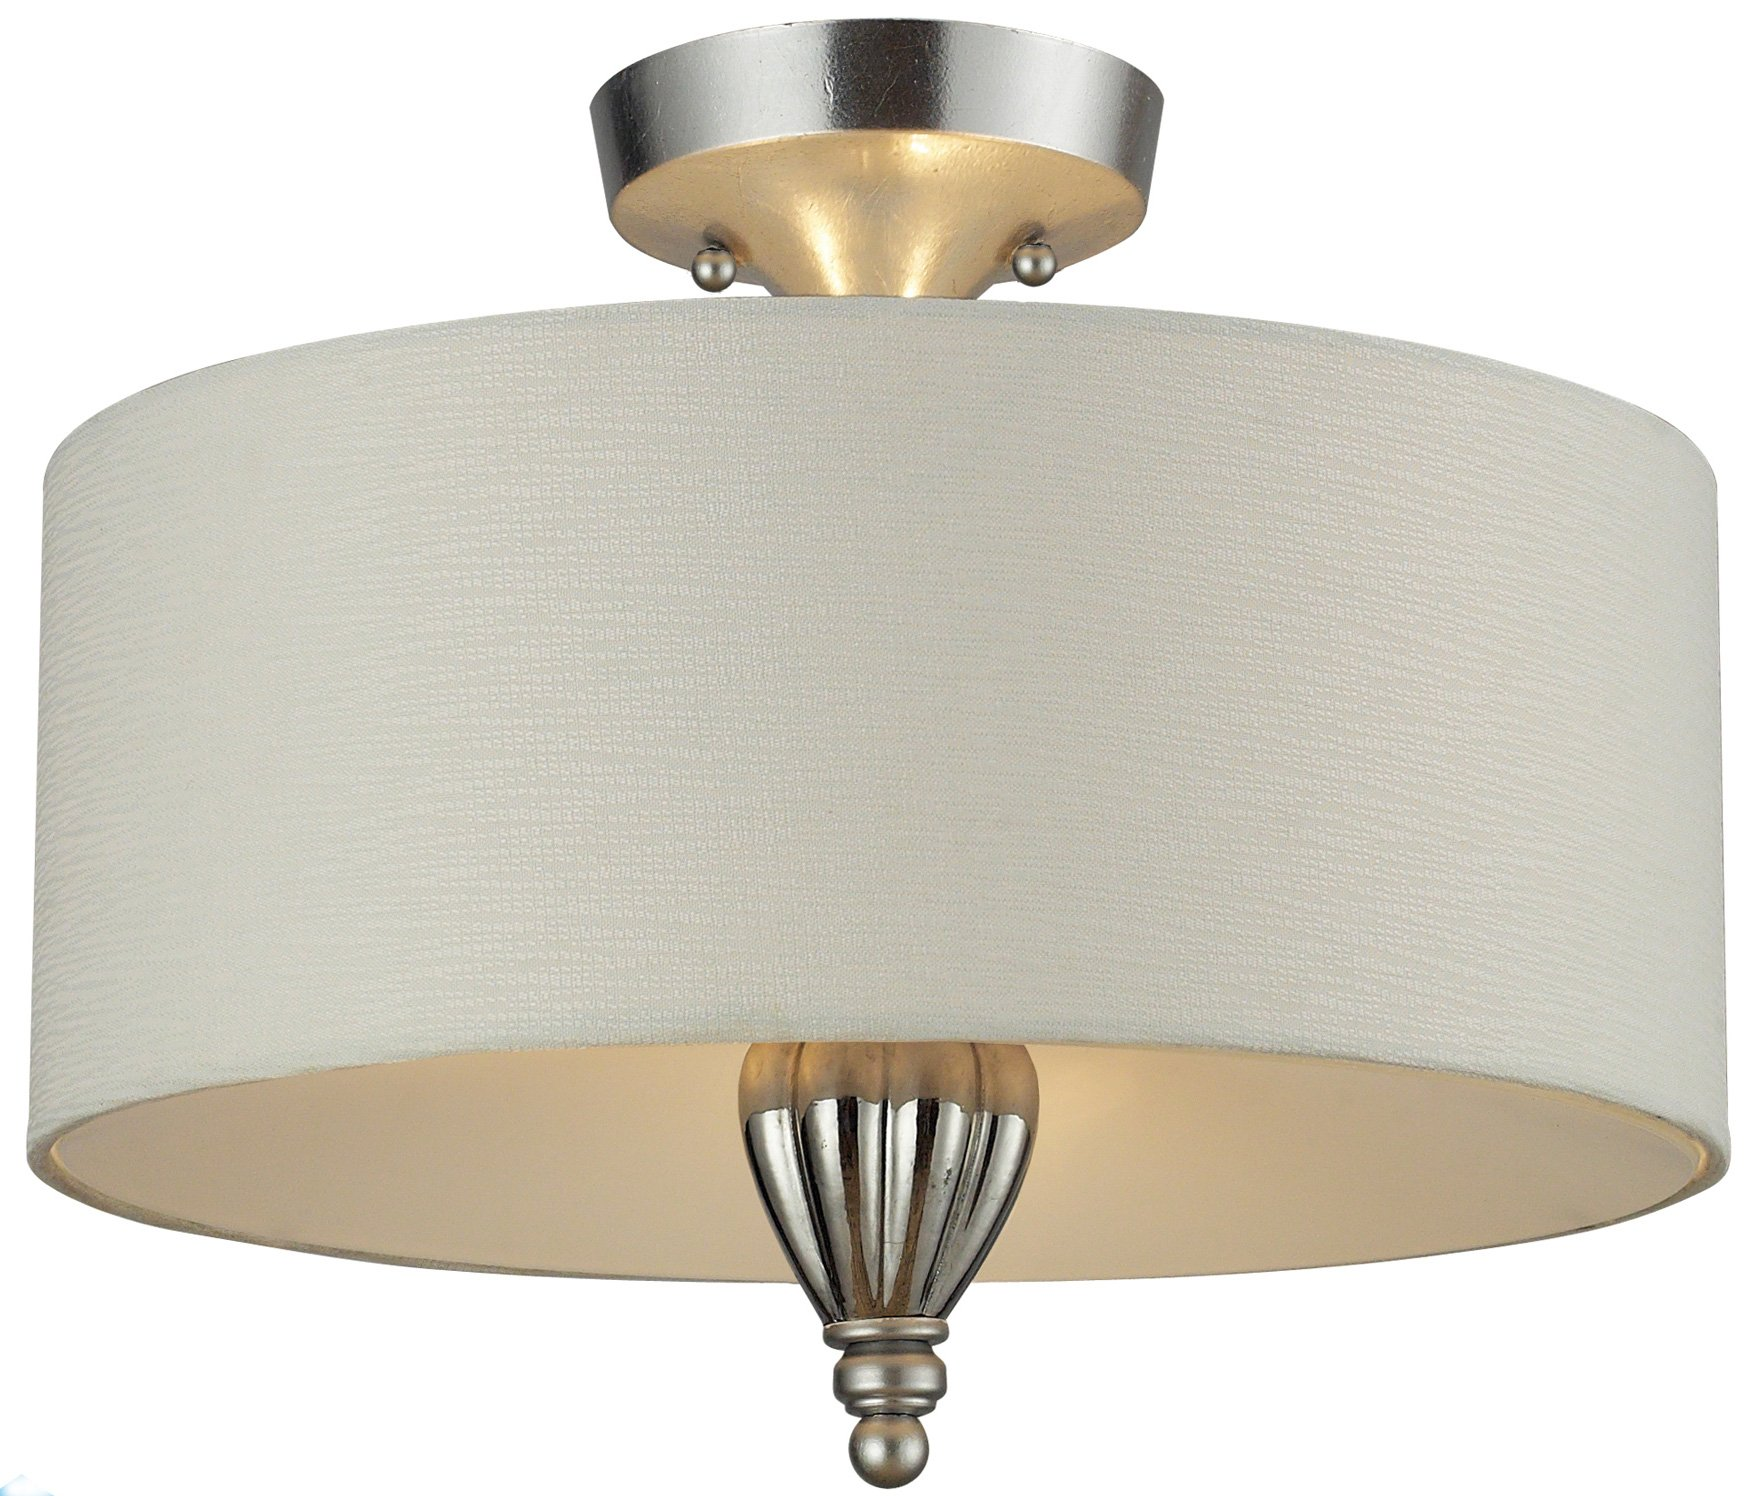 Elk Lighting Fans: Elk Lighting 46031/3 Martique Transitional Semi Flush